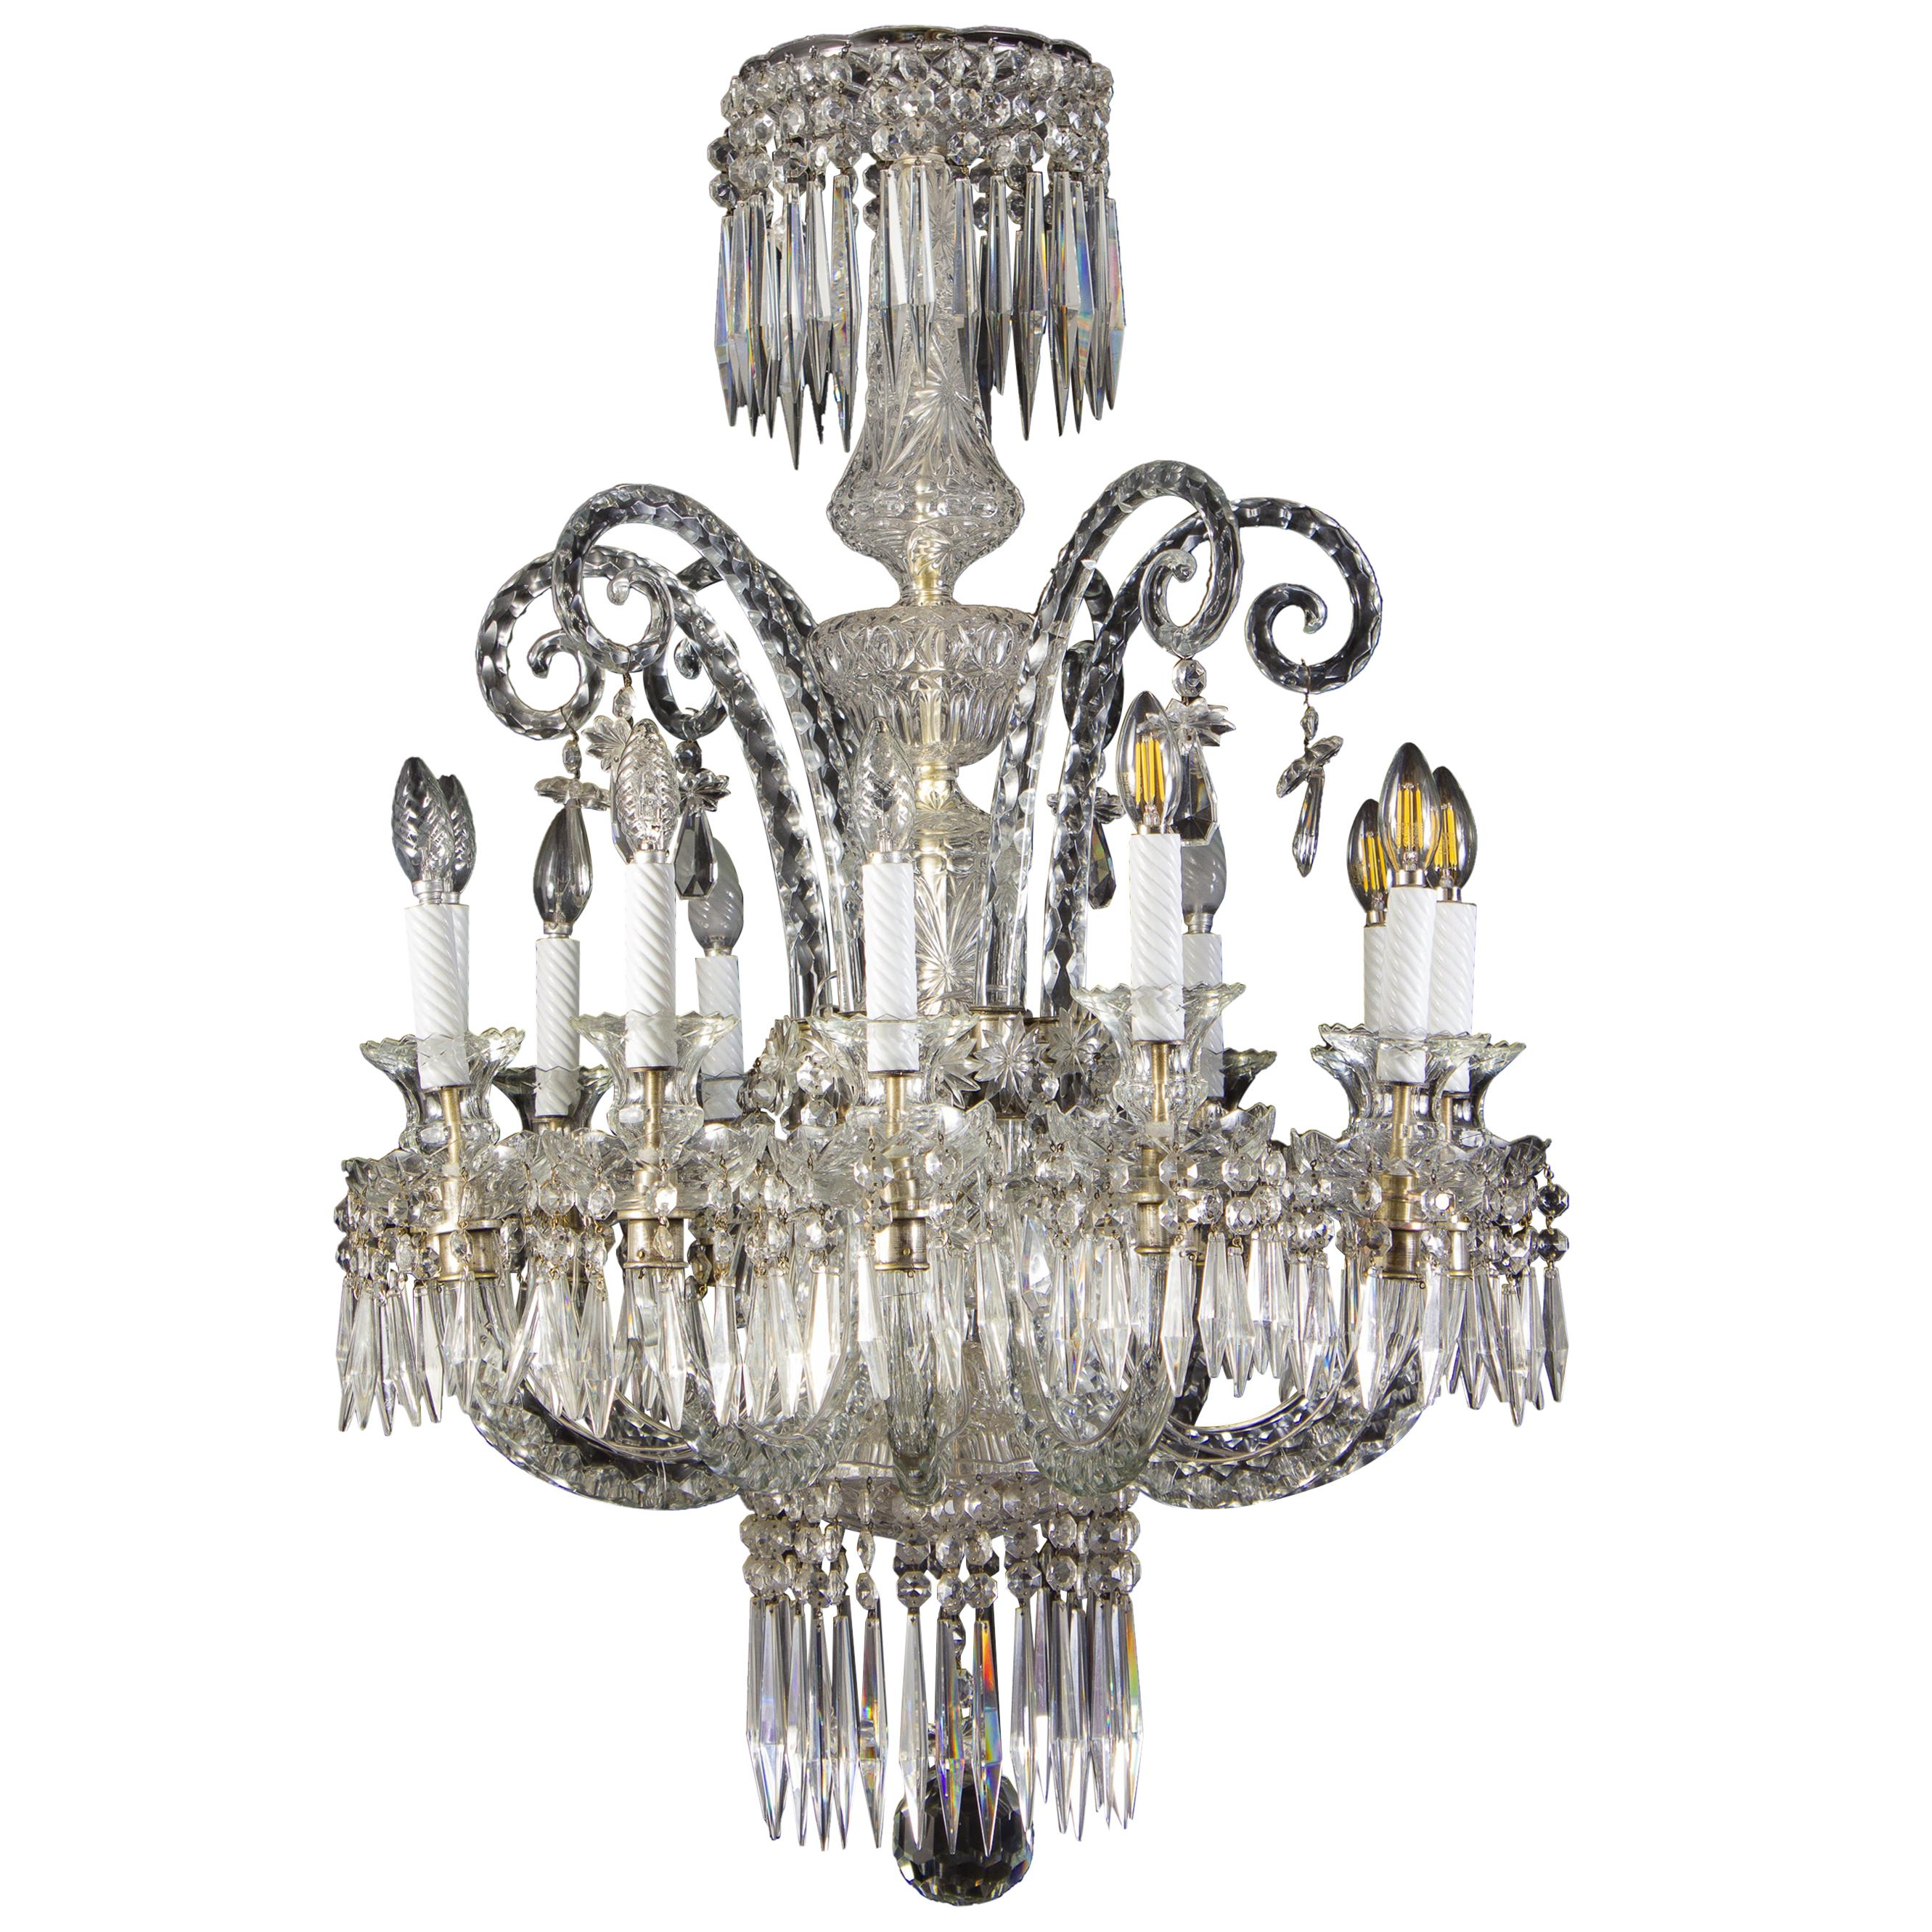 Spectacular 19th Century French Crystal Chandelier, 1880s